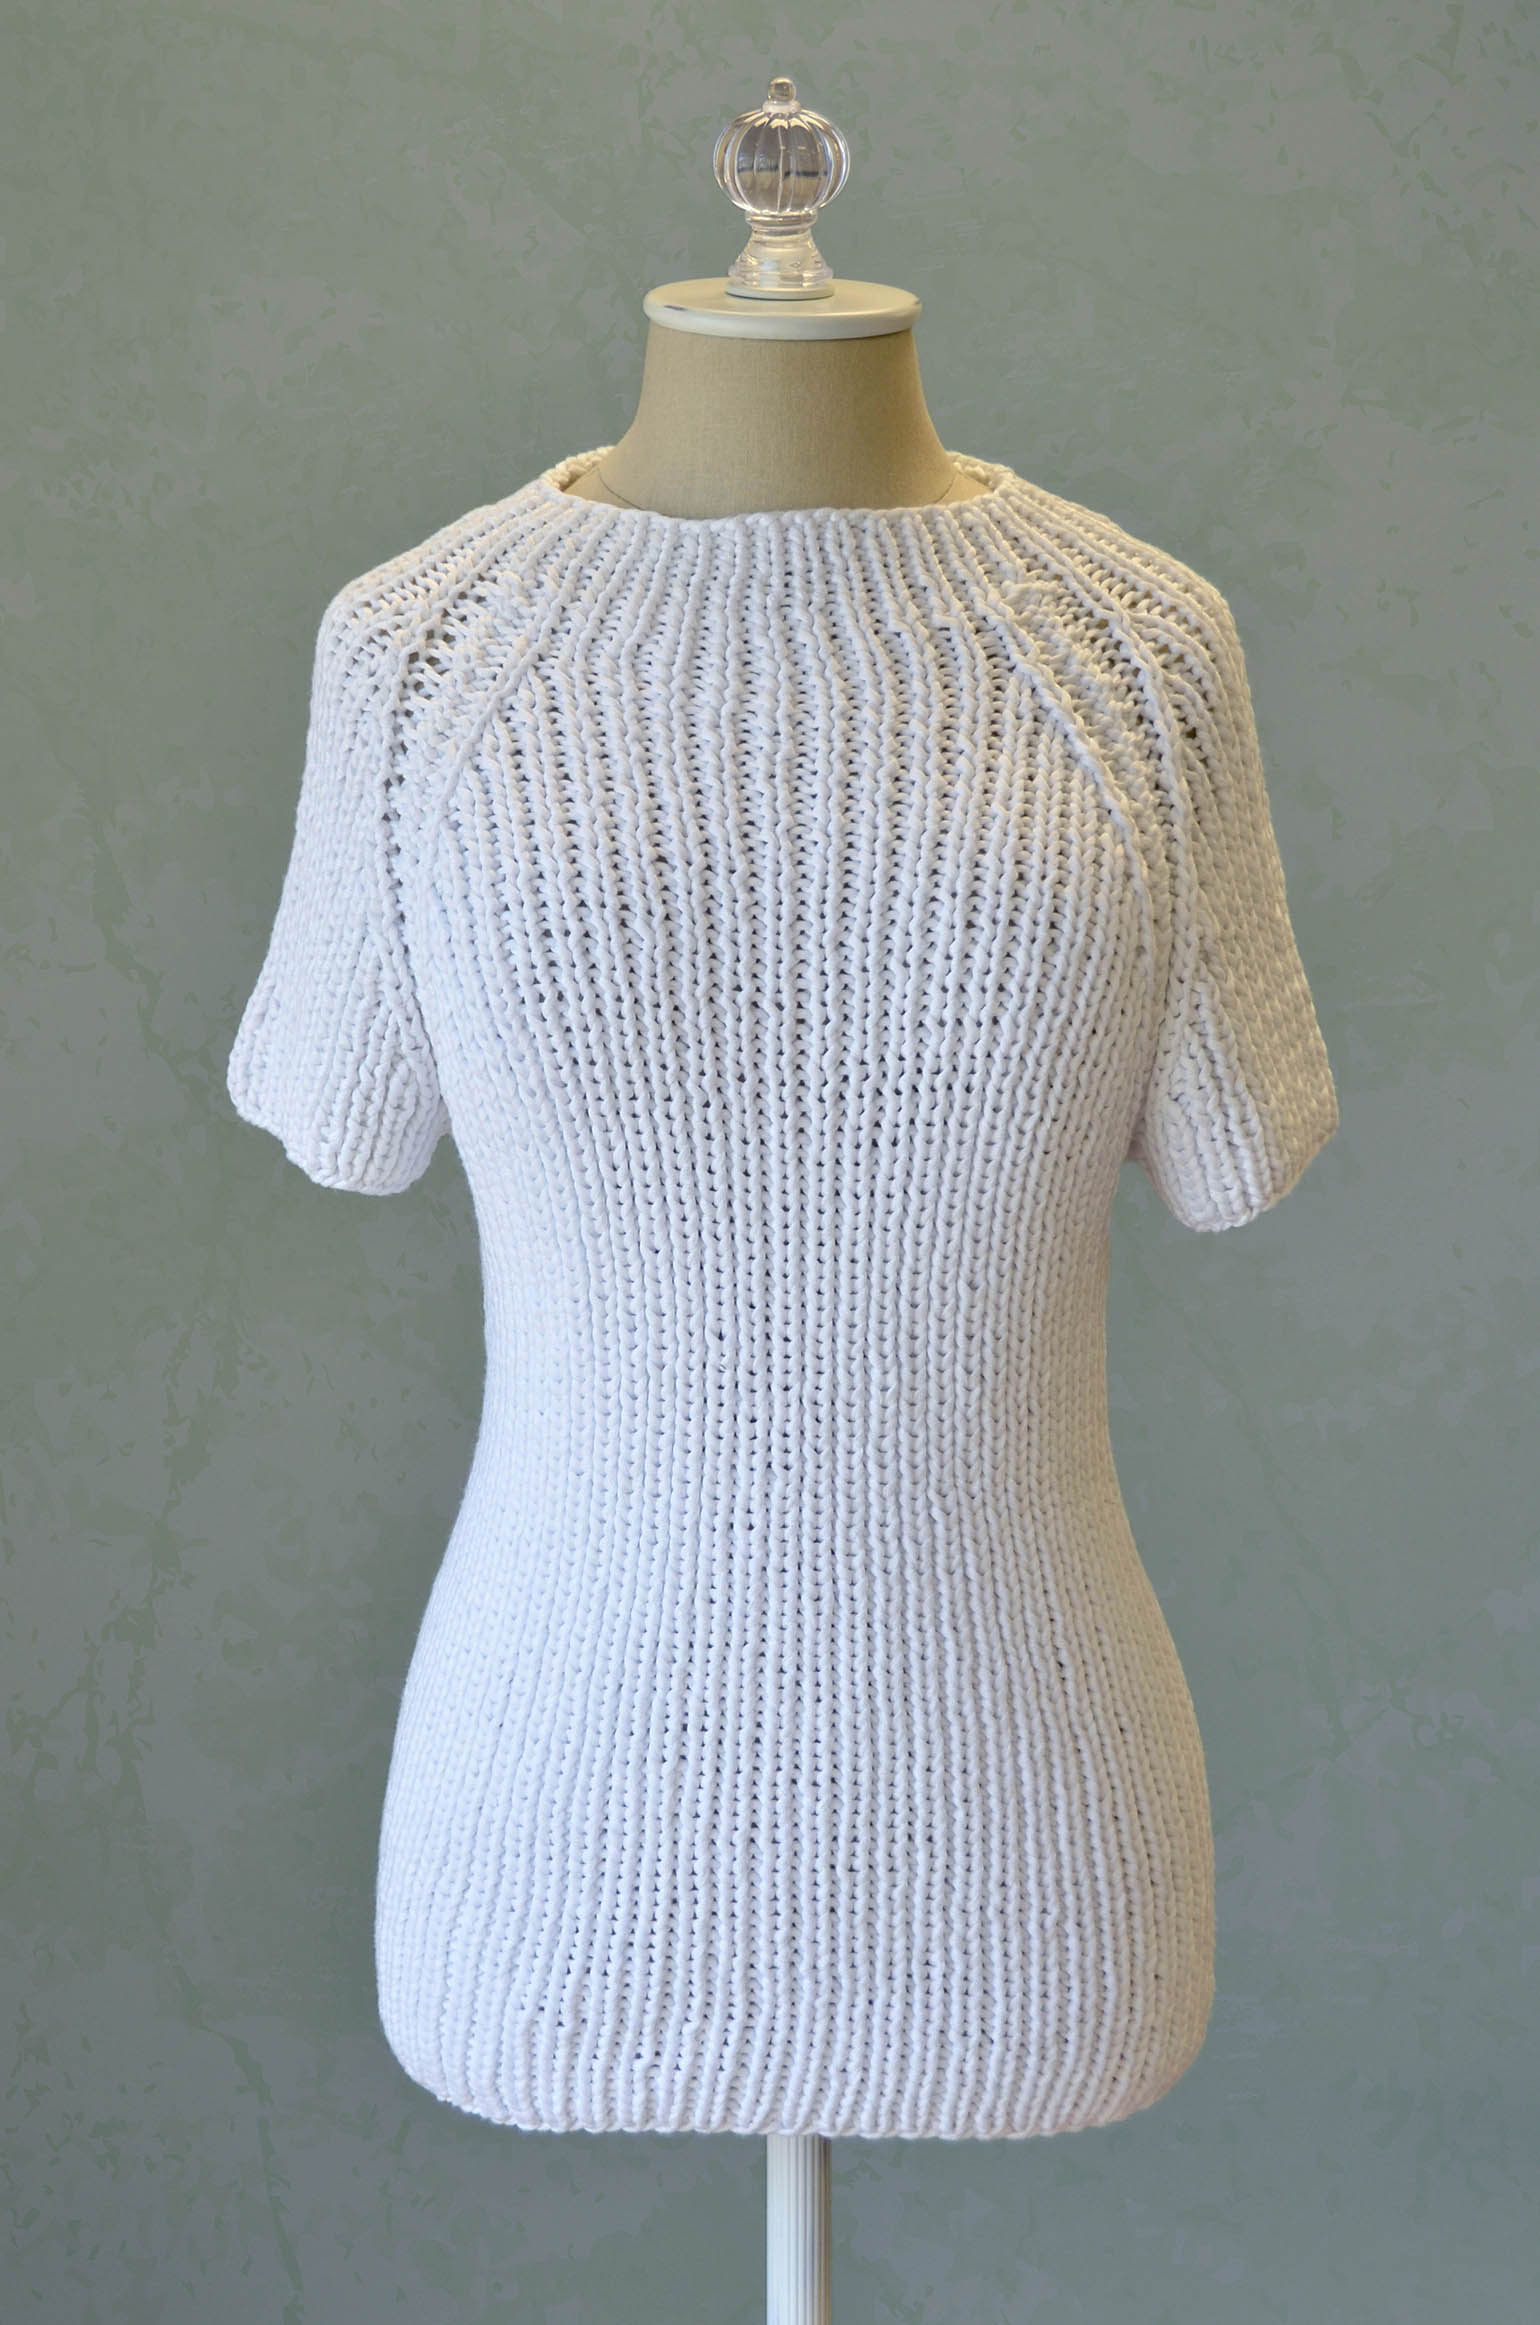 Free Pattern Friday – Raglan Tee | Universal Yarn Creative Network